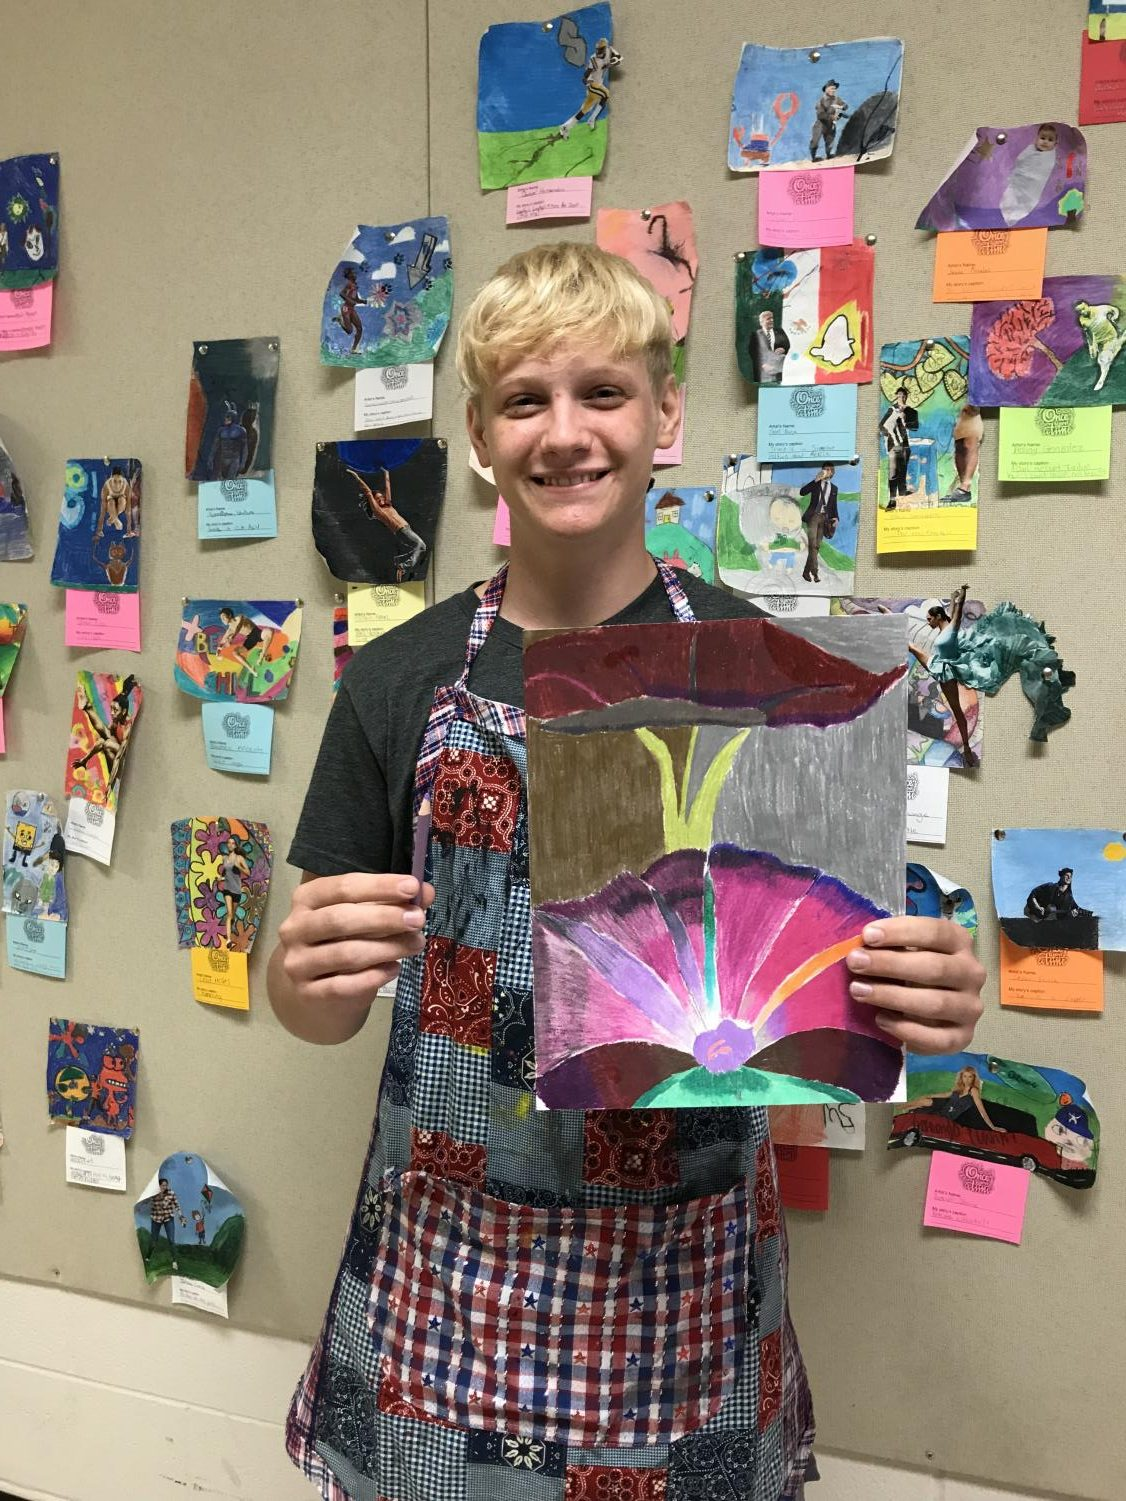 With art as one of his electives, sophomore Evan Fortson attributes lessons from sports help his creativity in Mrs. Huntsman Art I class.